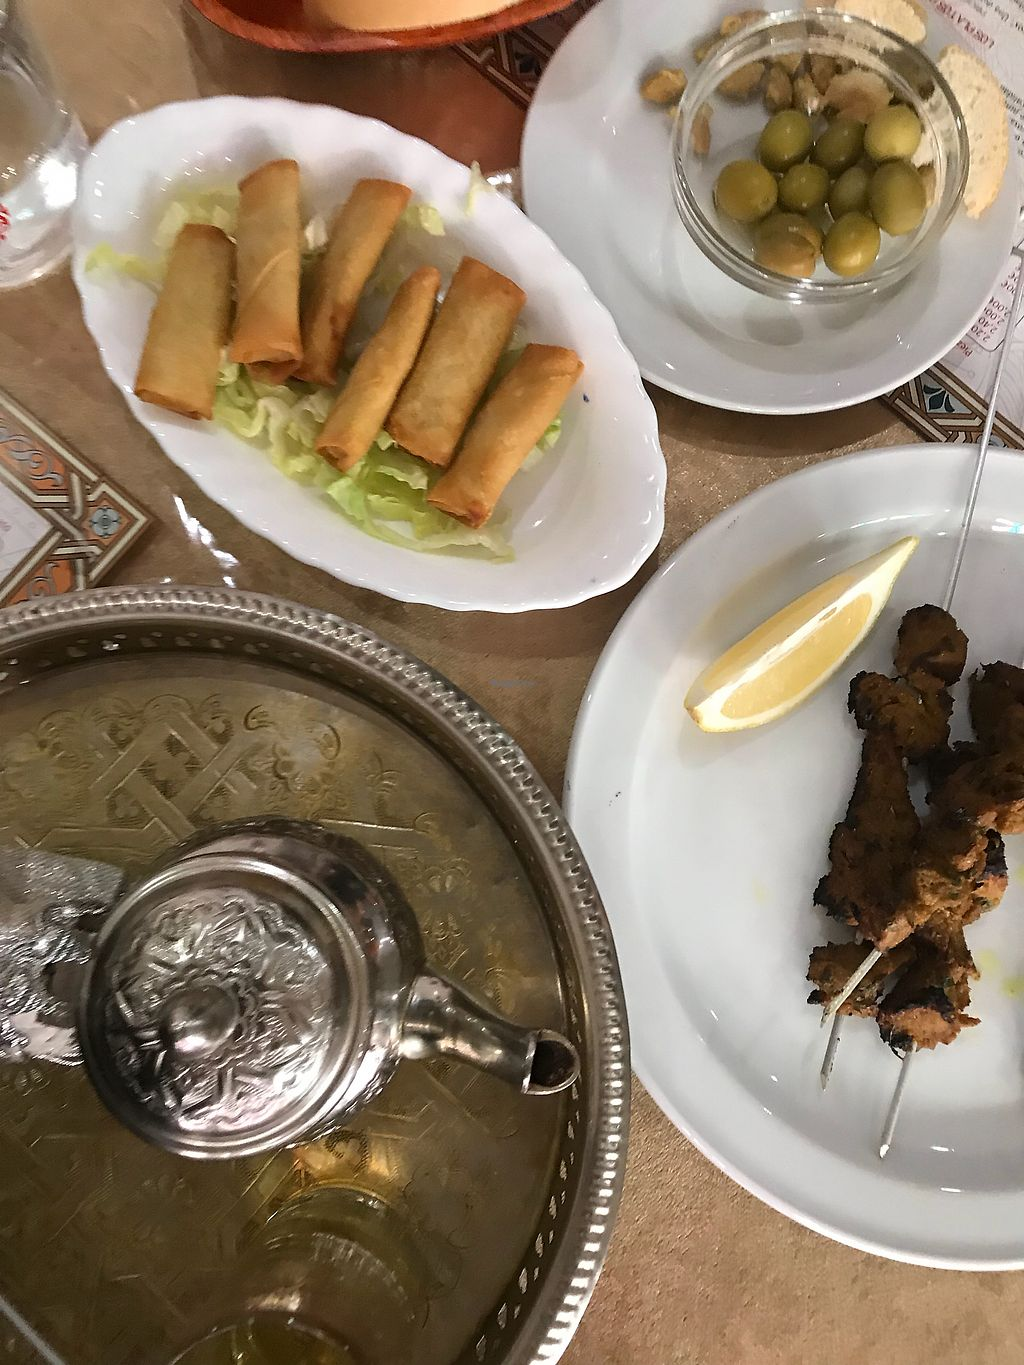 """Photo of Arabia Restaurante  by <a href=""""/members/profile/RonaldFerree"""">RonaldFerree</a> <br/>Pinchitos, aceitunas, y te! <br/> October 22, 2017  - <a href='/contact/abuse/image/75029/317659'>Report</a>"""